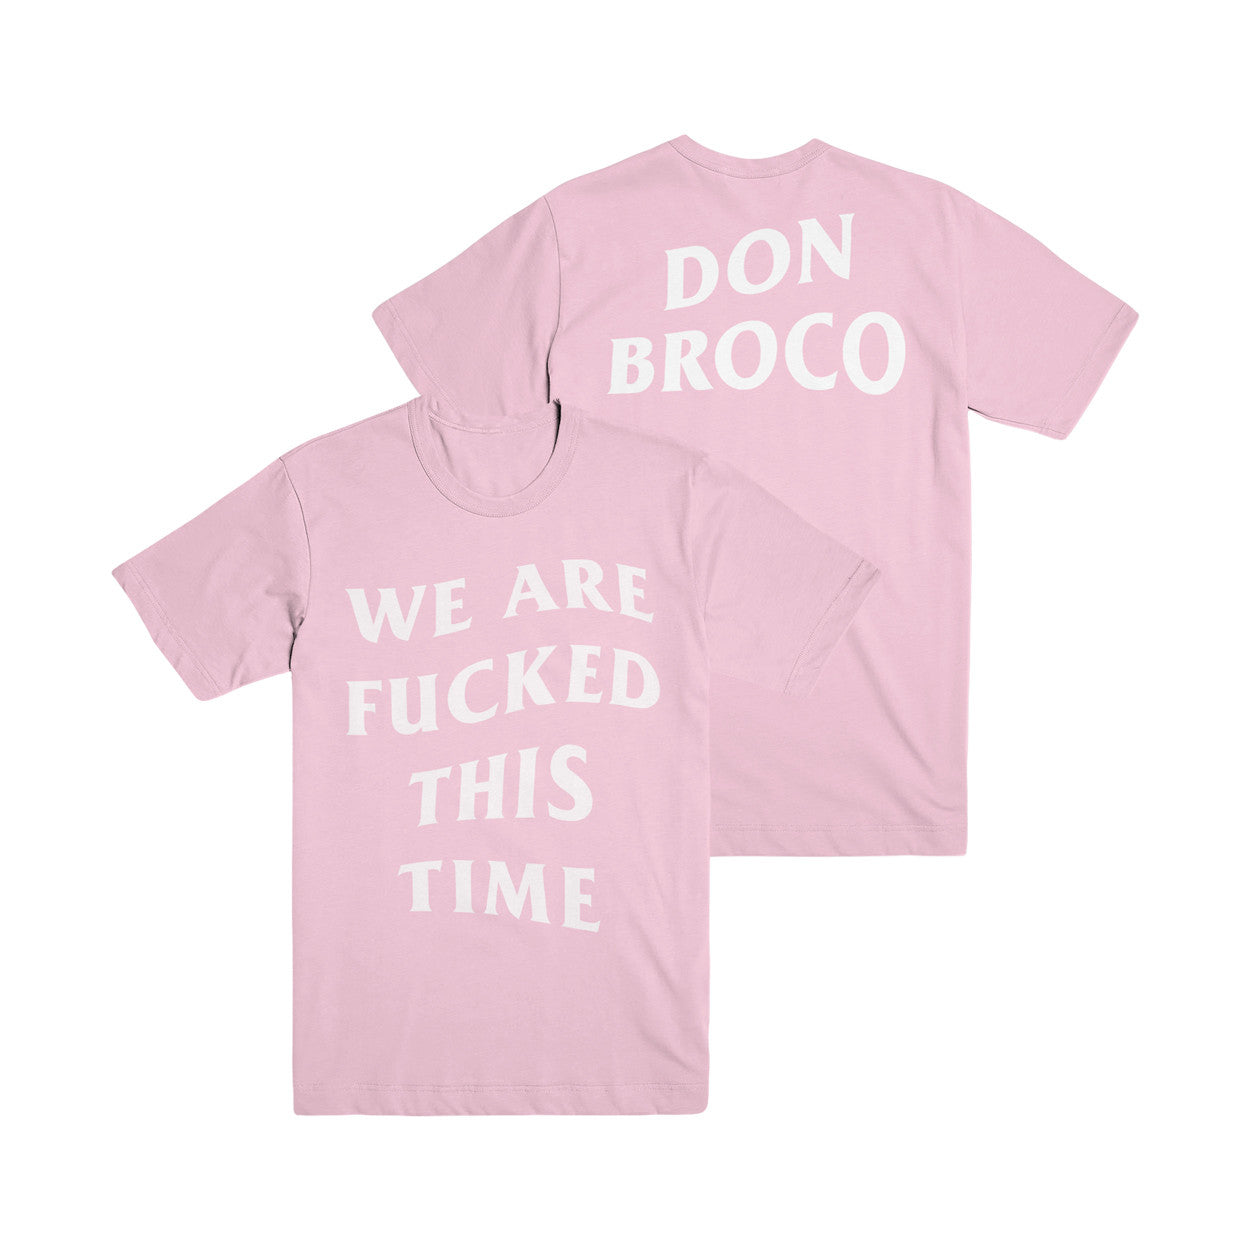 We Are Fucked This Time Tee